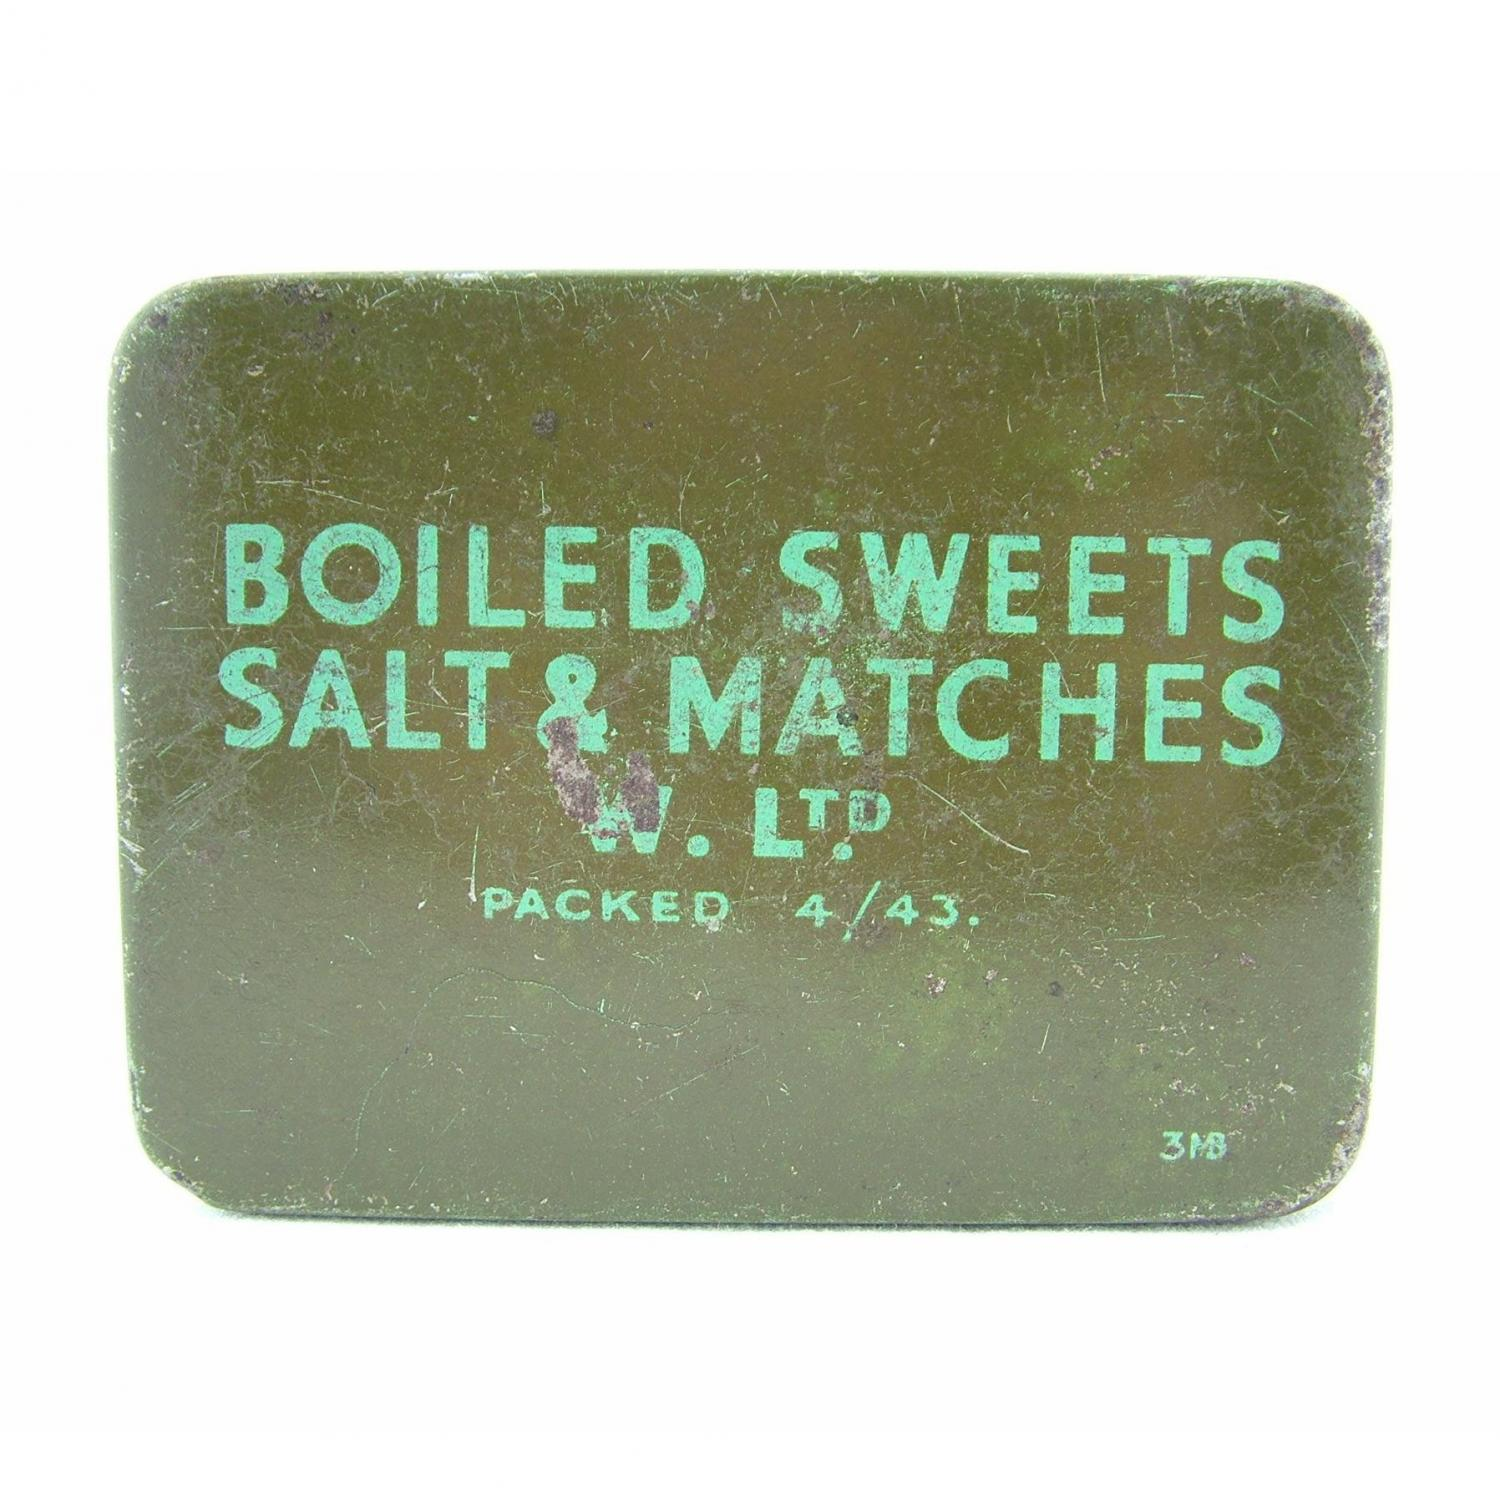 British forces boiled sweets & matches tin